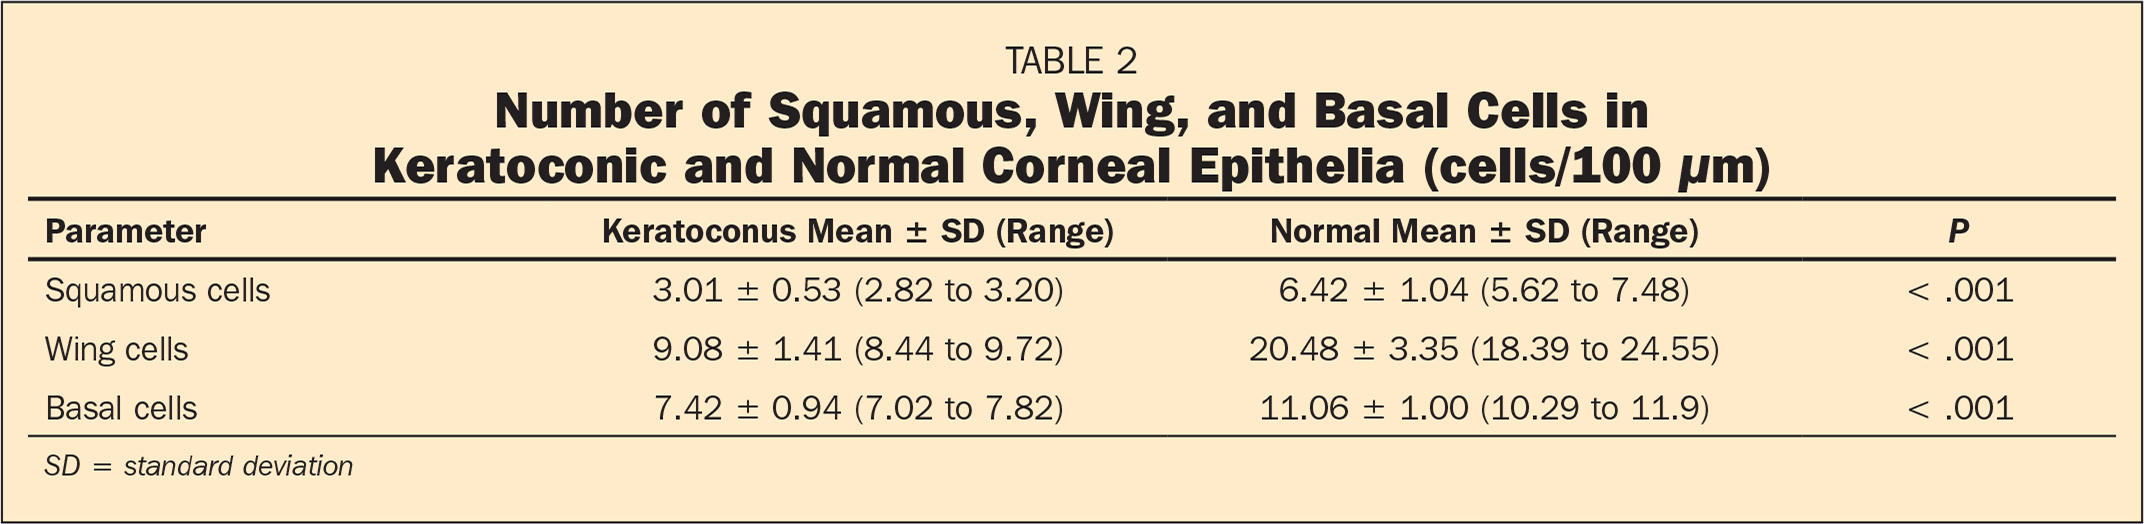 Number of Squamous, Wing, and Basal Cells in Keratoconic and Normal Corneal Epithelia (cells/100 μm)